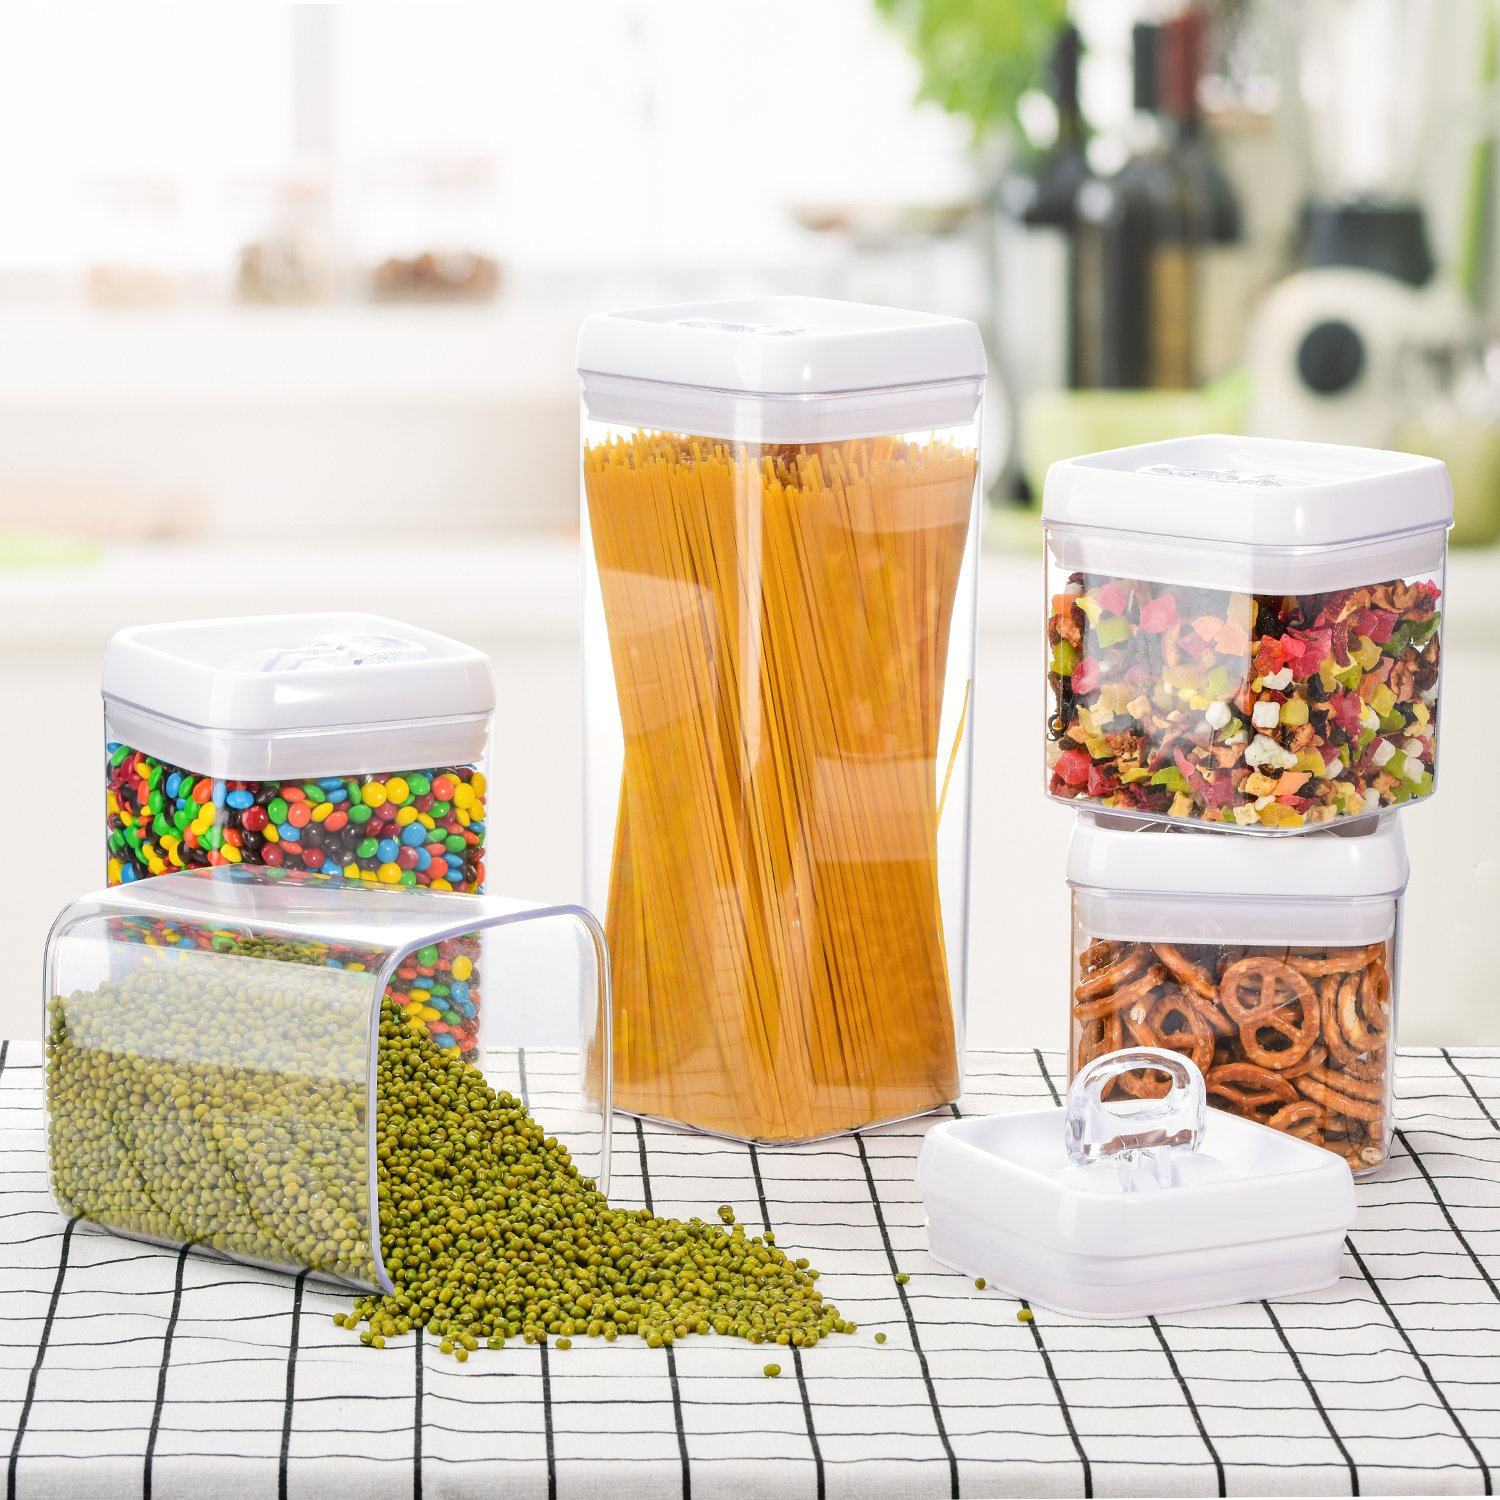 ME.FAN Large Air-Tight Food Storage Container Set [5-Piece Set] - Pantry Durable Seal Pot - Cereal Storage Containers - For Dry Foods & Liquids - BPA Free - Clear Containers with White Lids